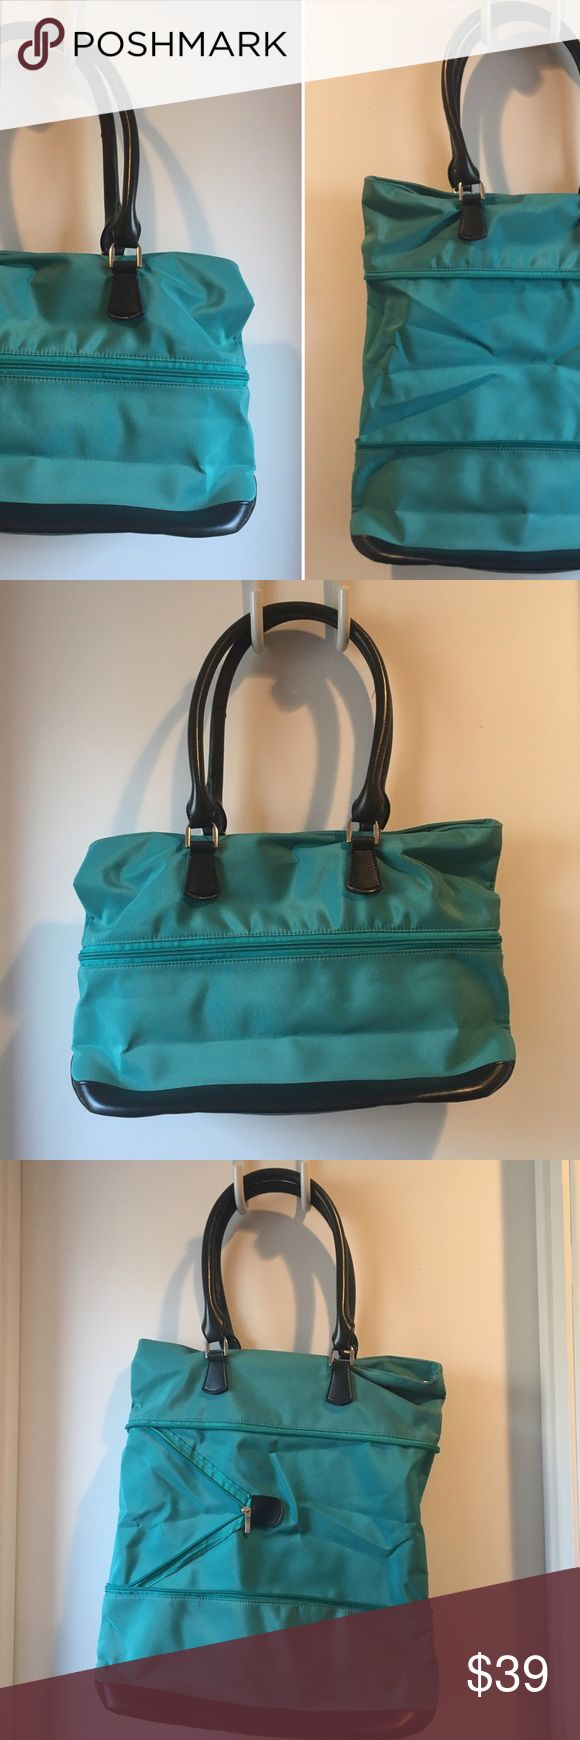 Expandable nylon tote bag Cool expandable tote bag. Teal blue green color with black shoulder straps and bottom. The zipper on outside unzips to expand bag. Thick water resistant nylon fabric with vegan leather bottom and straps. Inside has one zip pouch and three pockets. Great for travel and as a carryon! Or for a laptop. Excellent condition.  Zippered up: 16x11x5 inches  Unzipped: 16x18x5 inches Bags